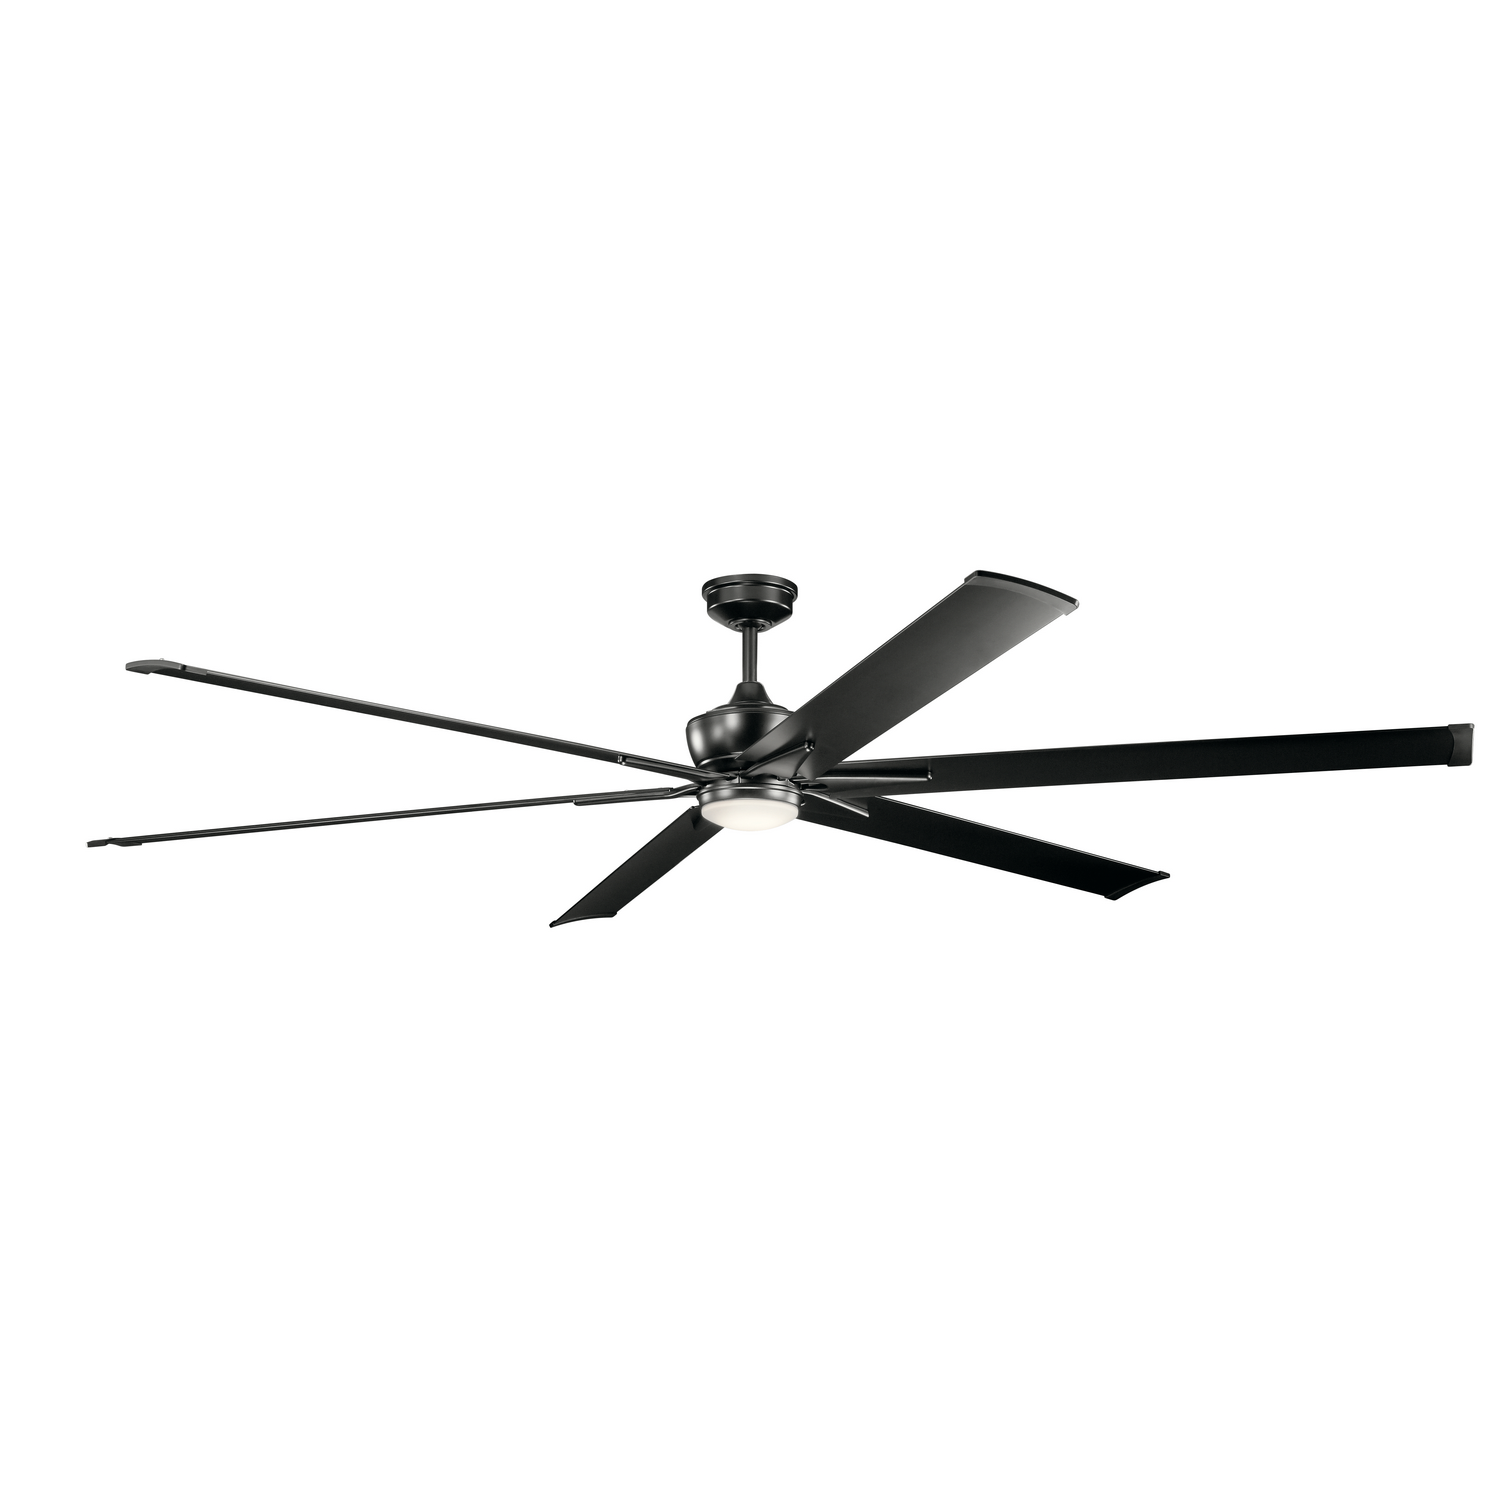 96 inchCeiling Fan from the Szeplo Patio collection by Kichler 300302SBK